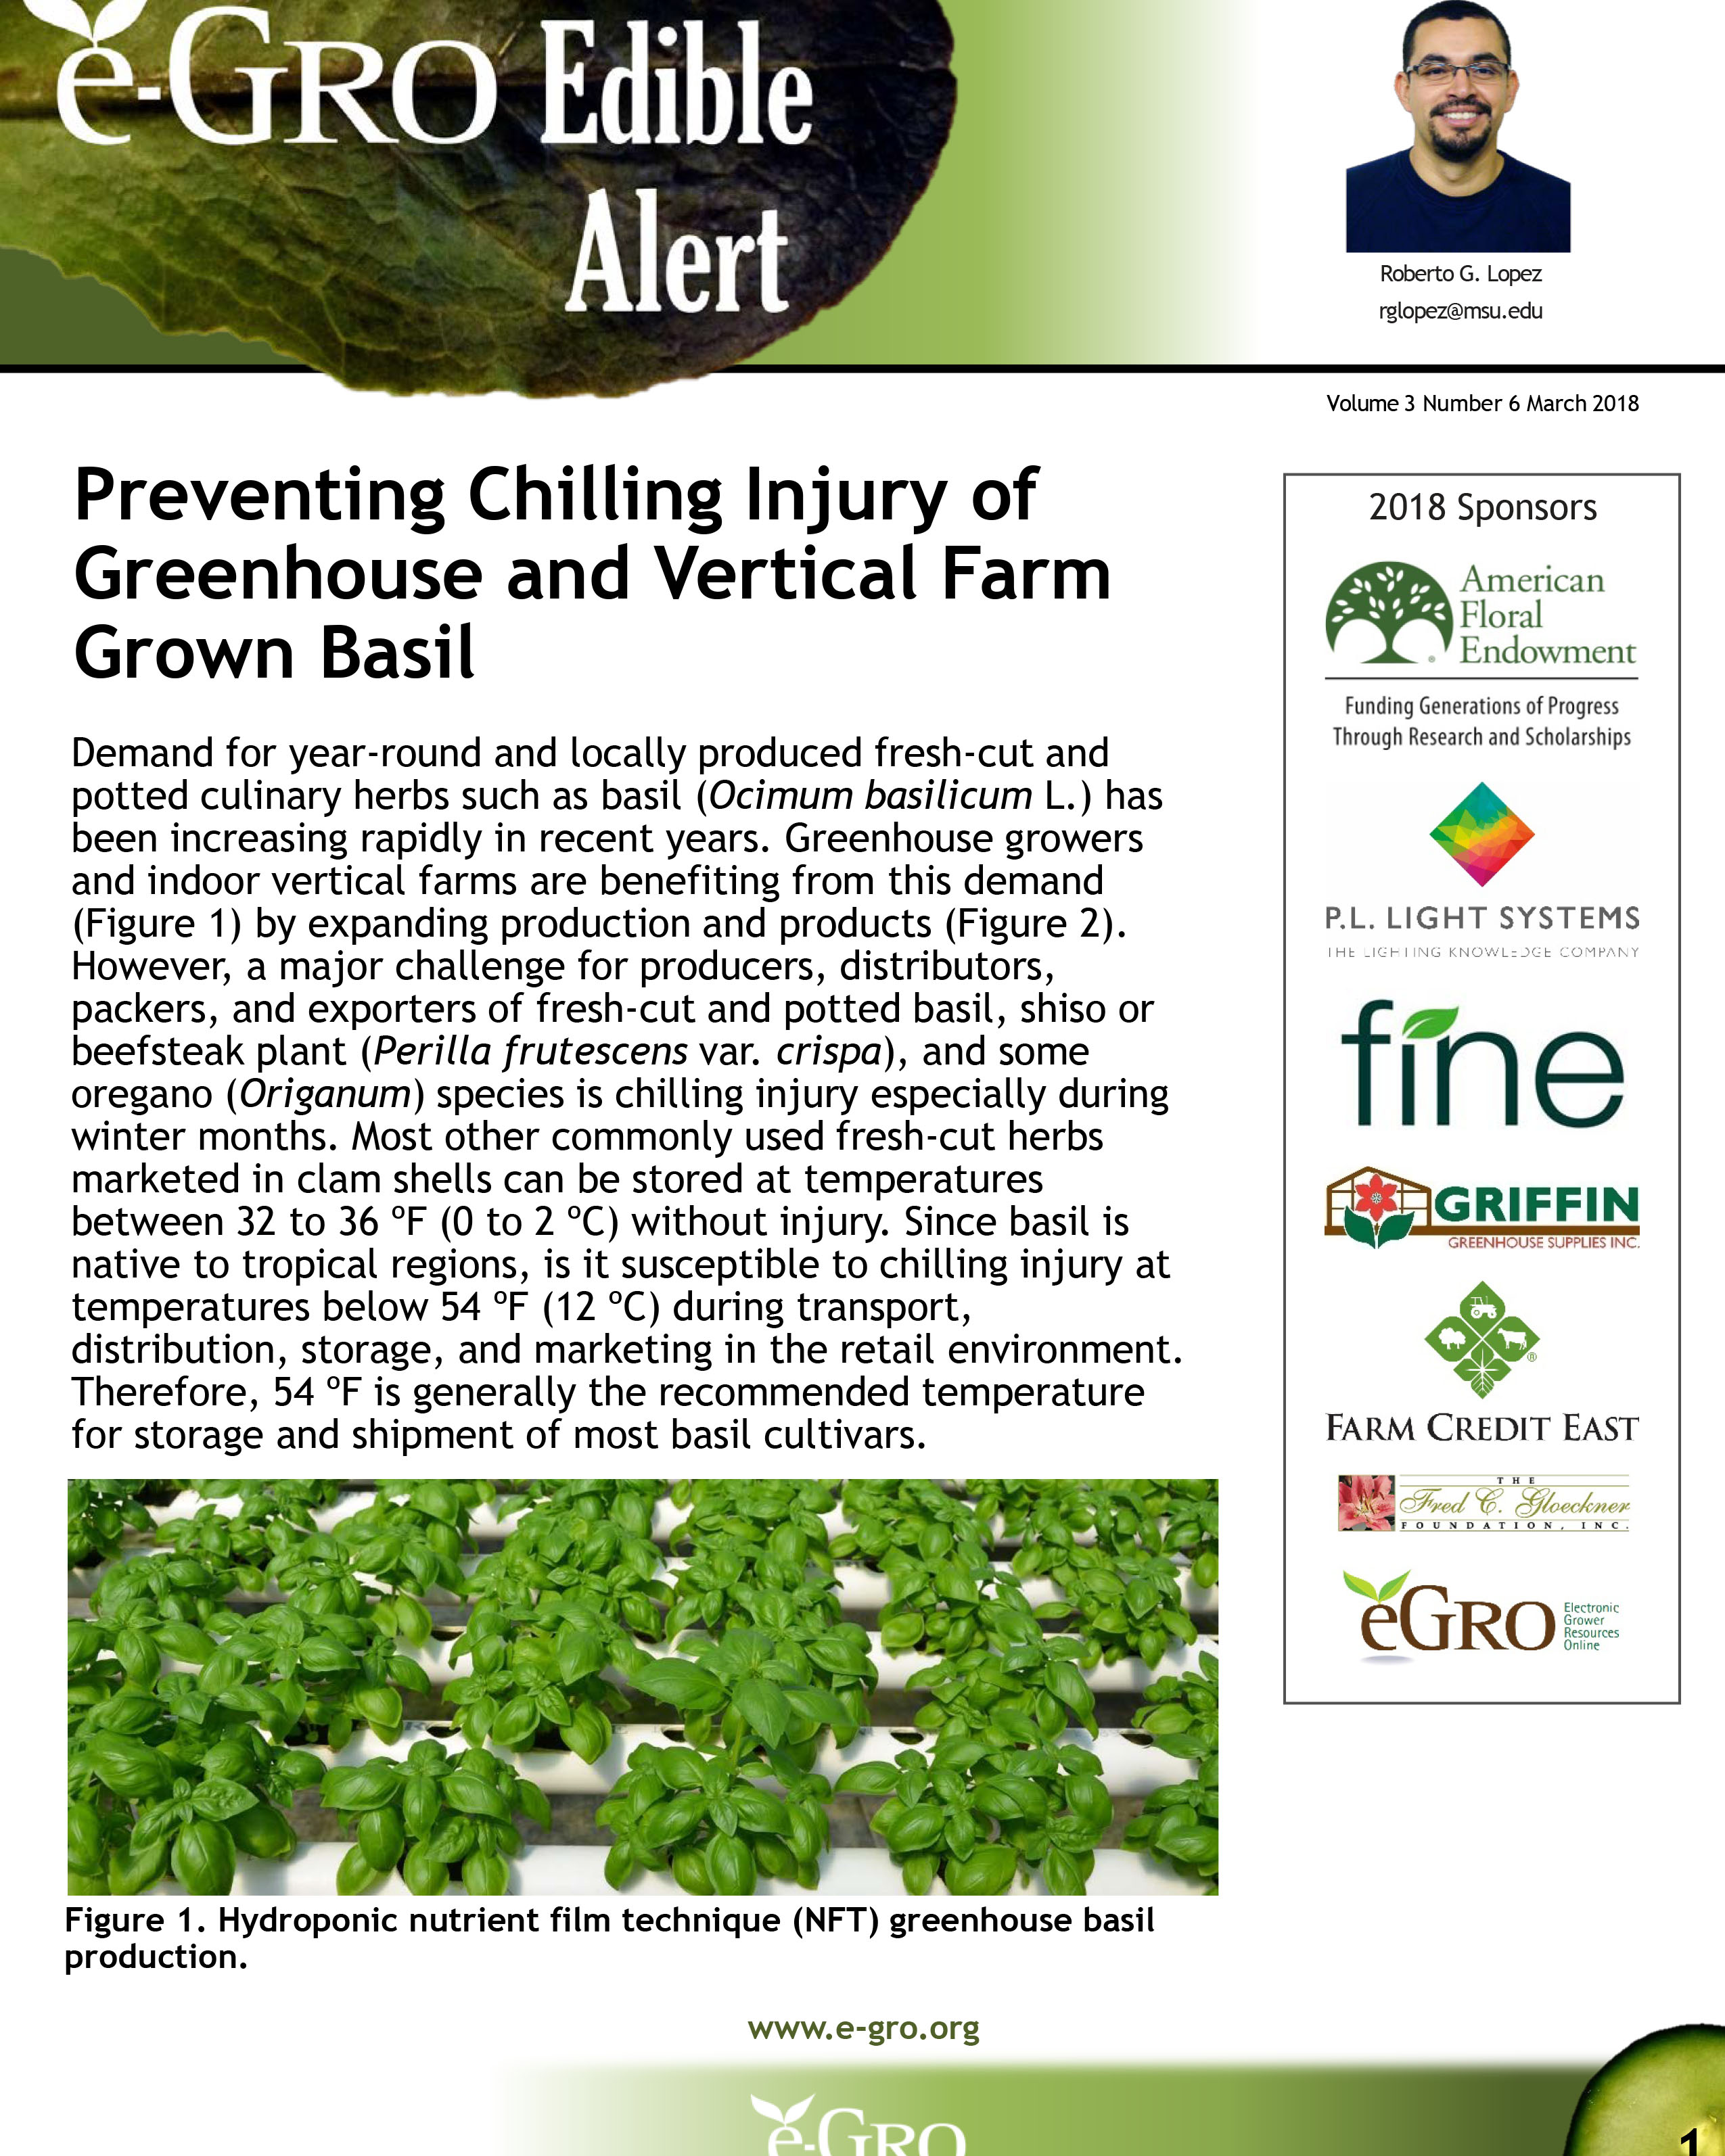 An example of MSU generated e-GRO Edible Alerts.